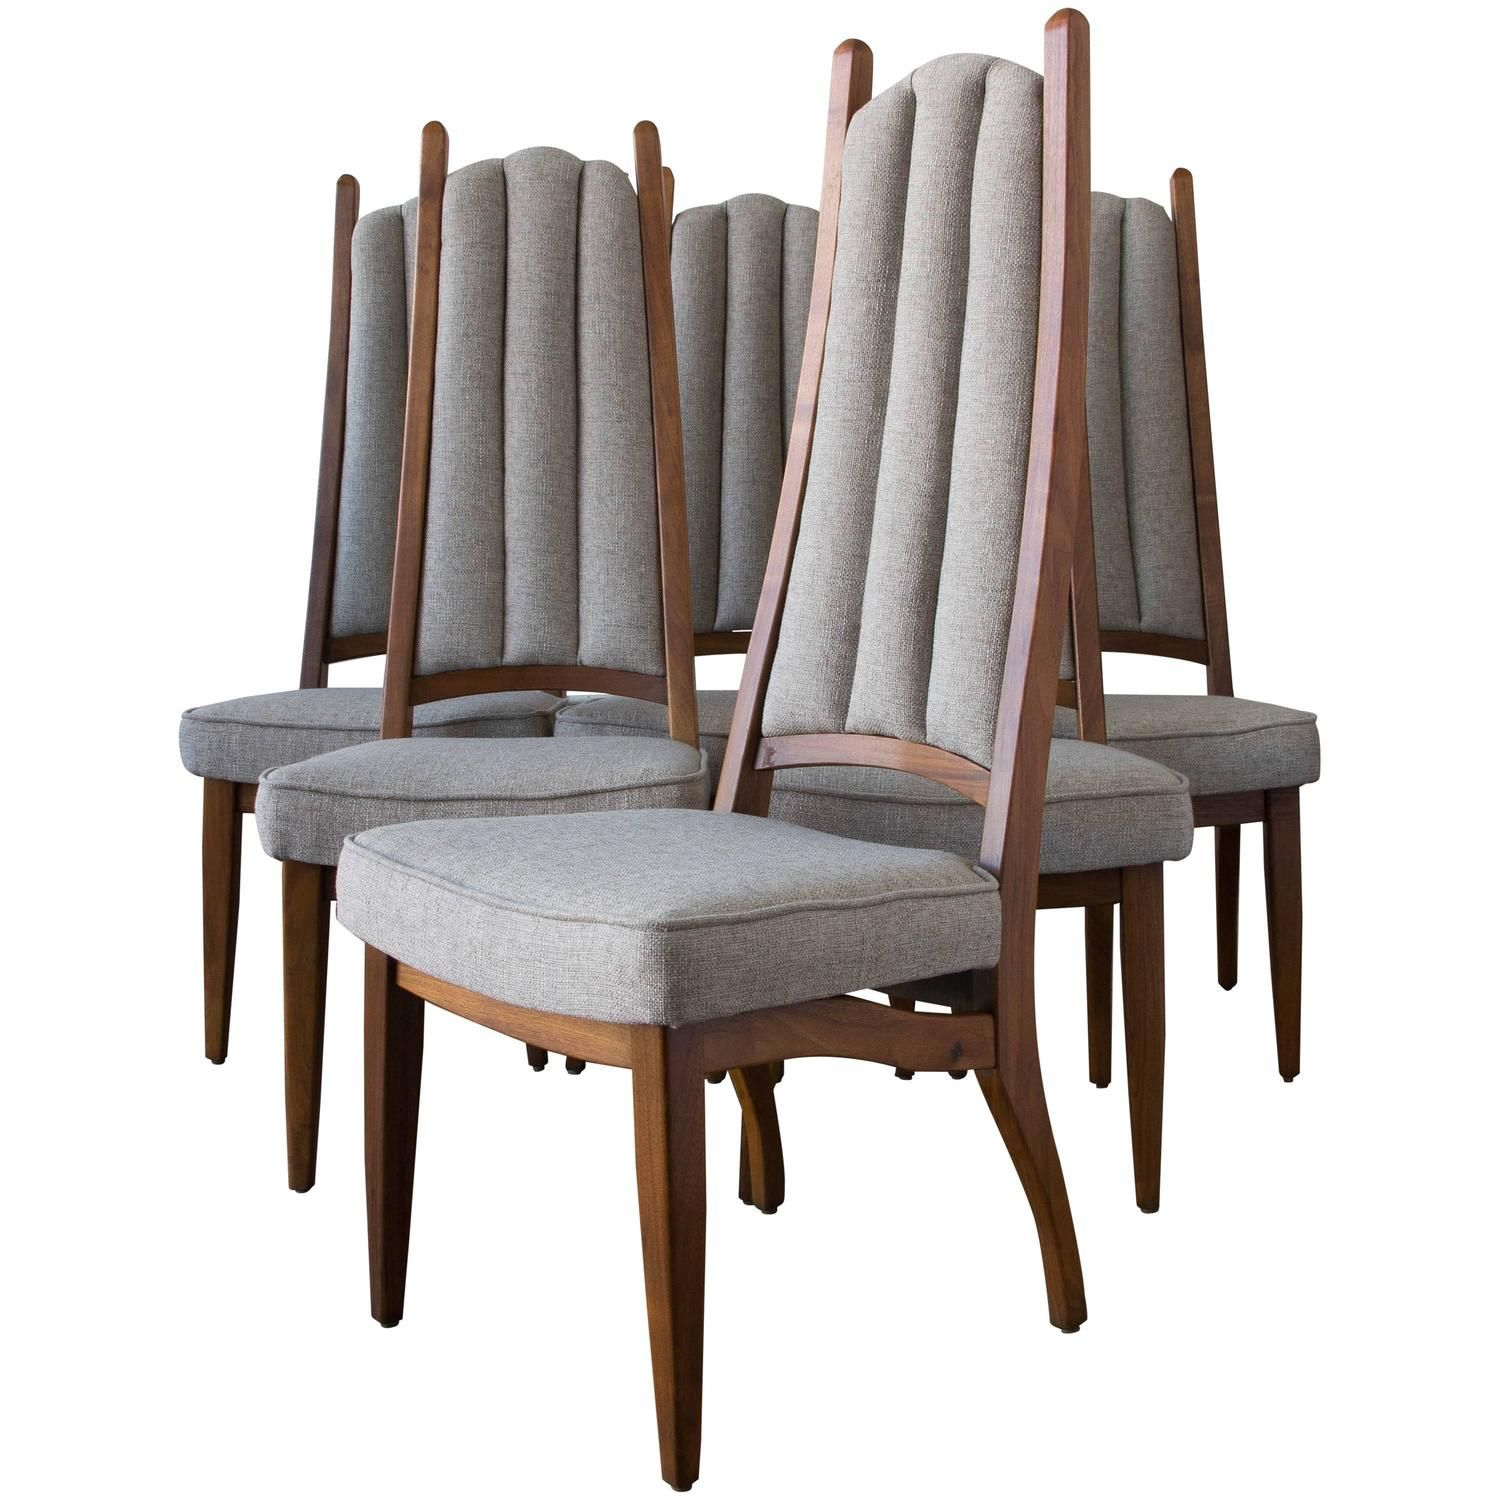 Set of Six Cal Mode High Backed Dining